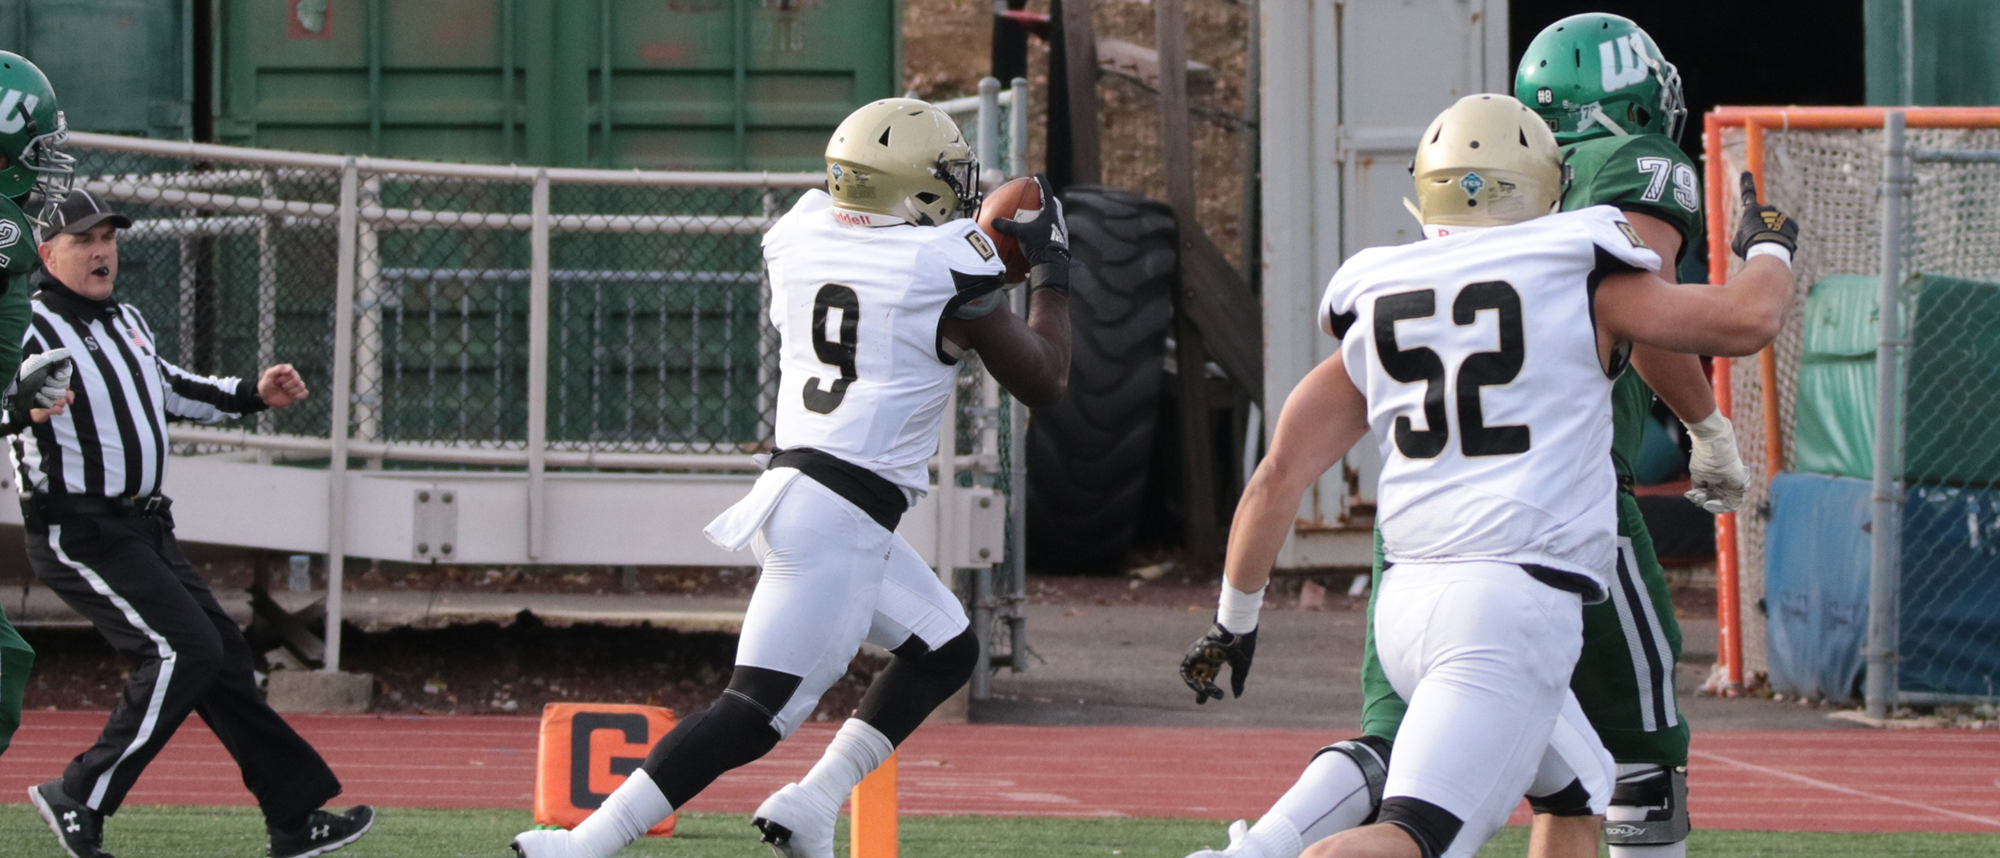 Ukele pick-6 helps Bryant close 2019 with win